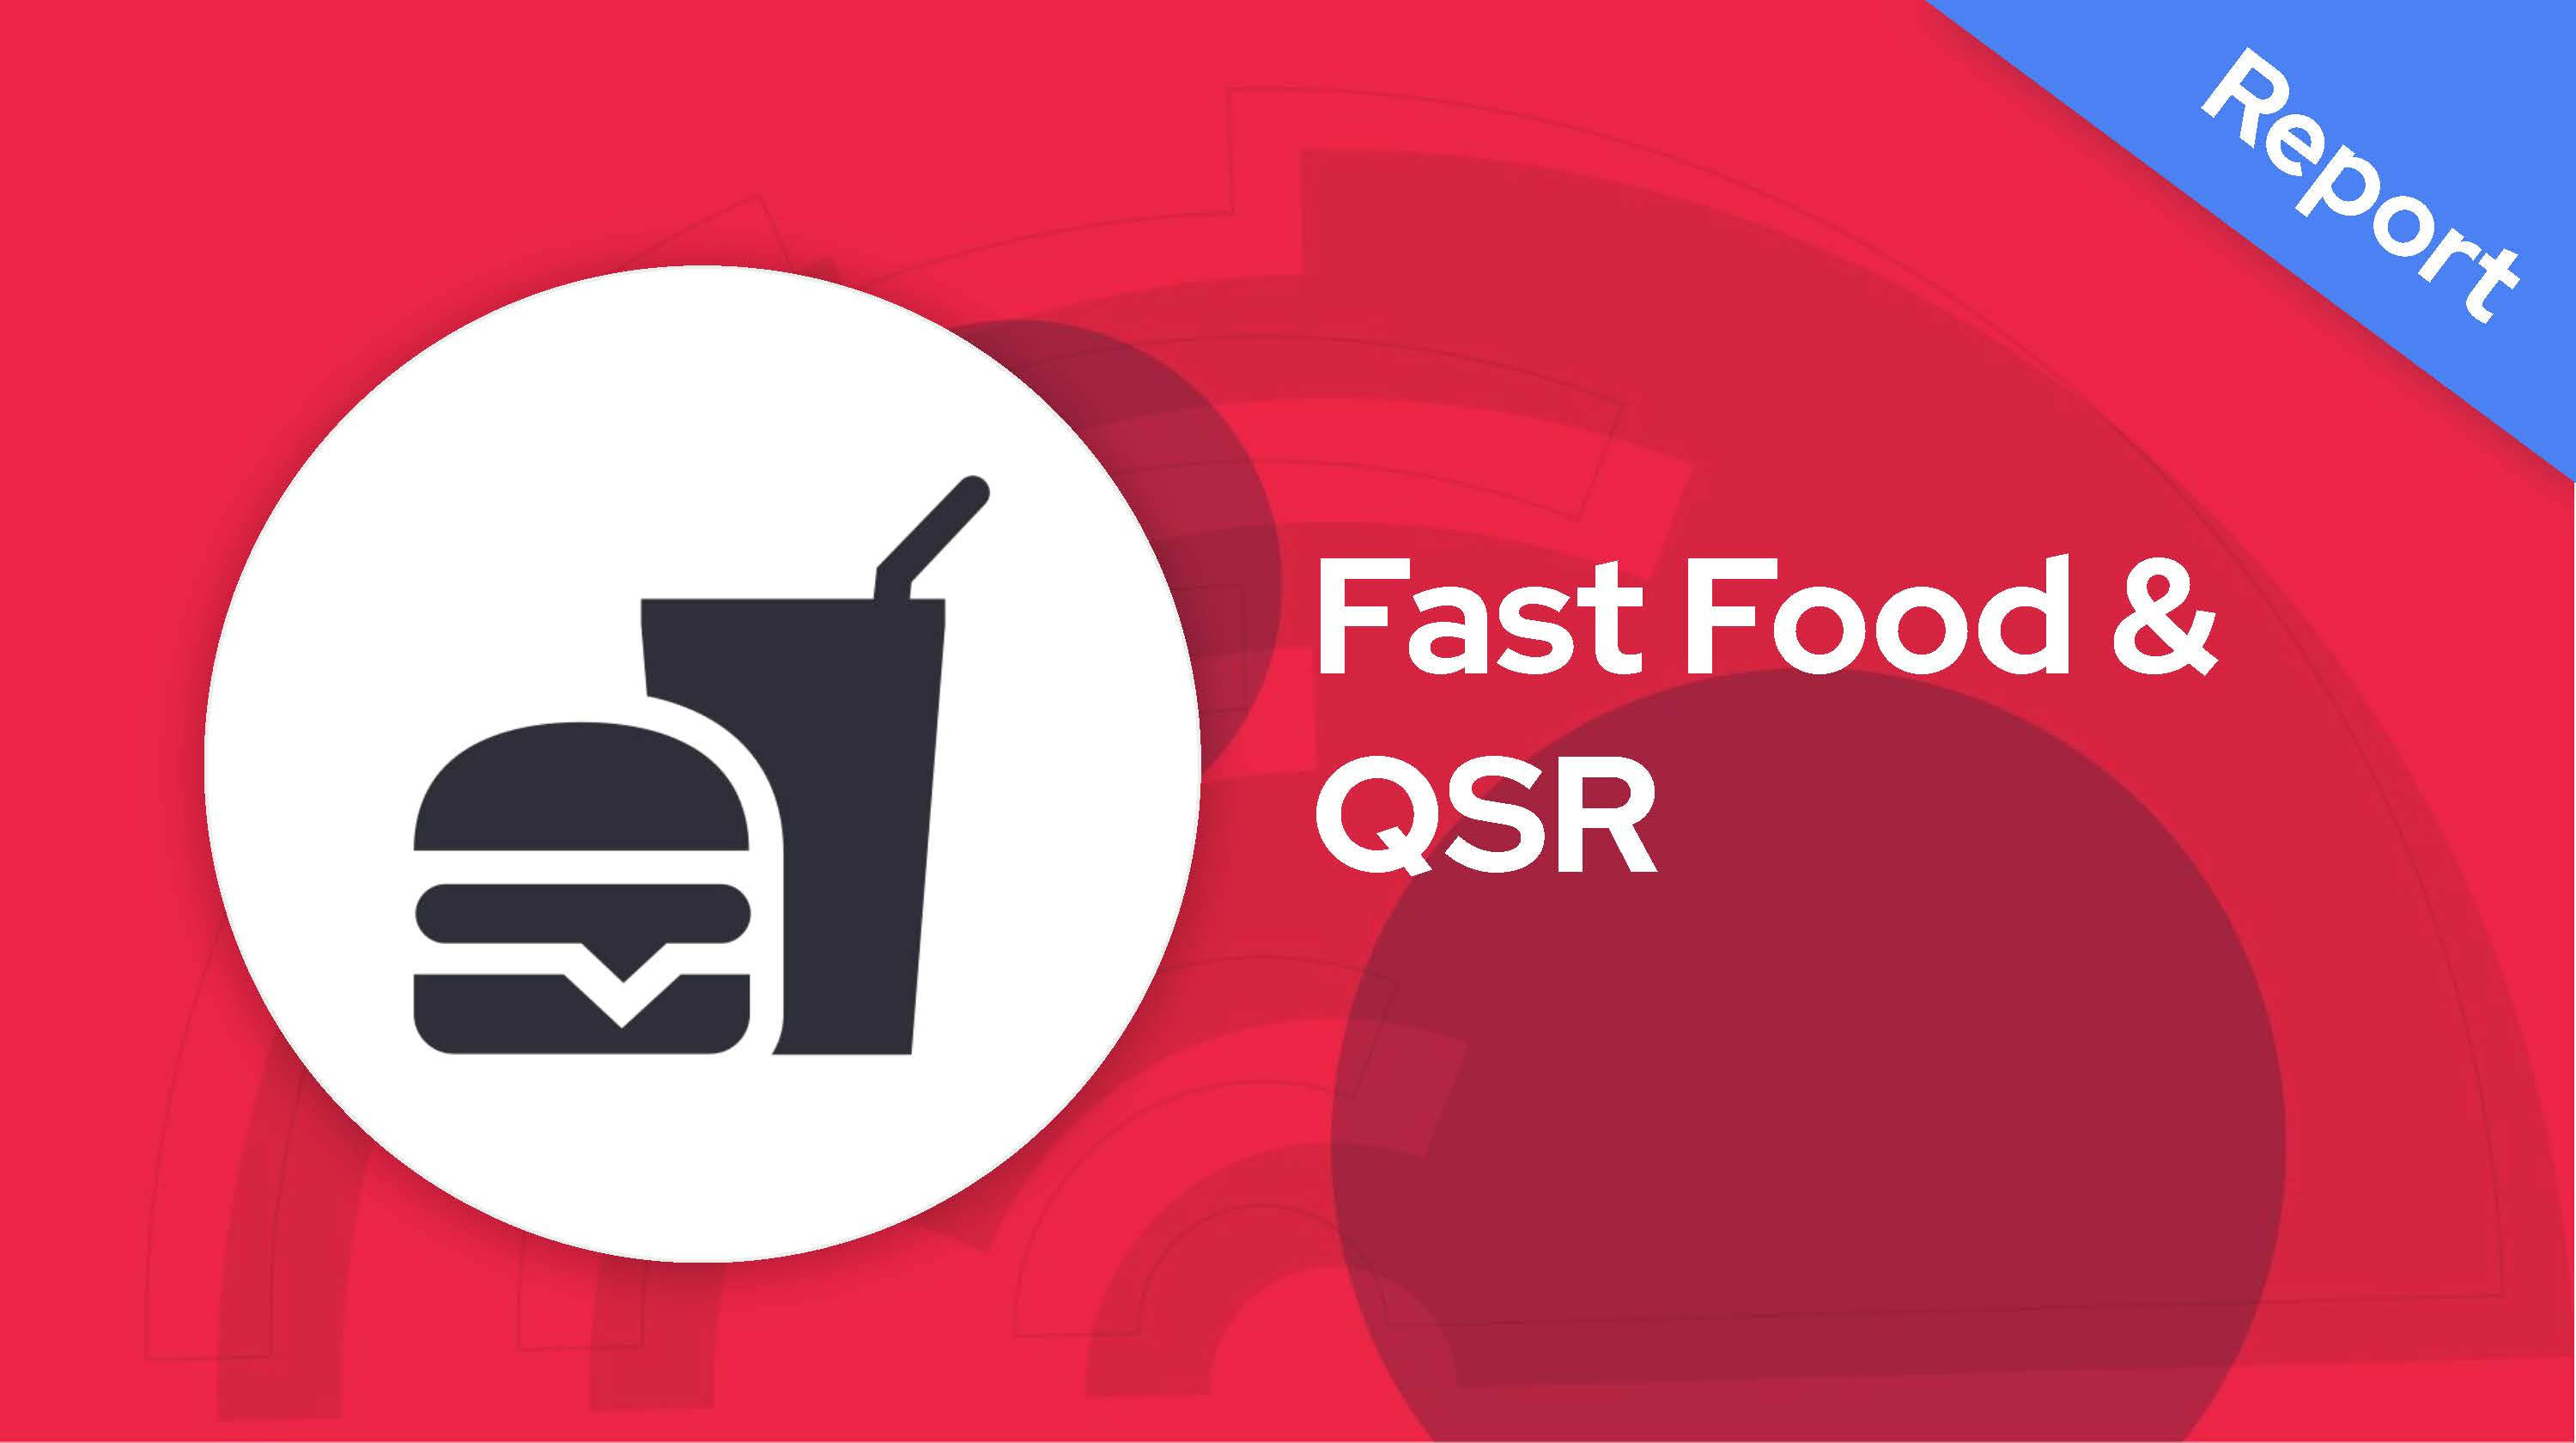 Paid Social Snapshot: Fast Food & QSR